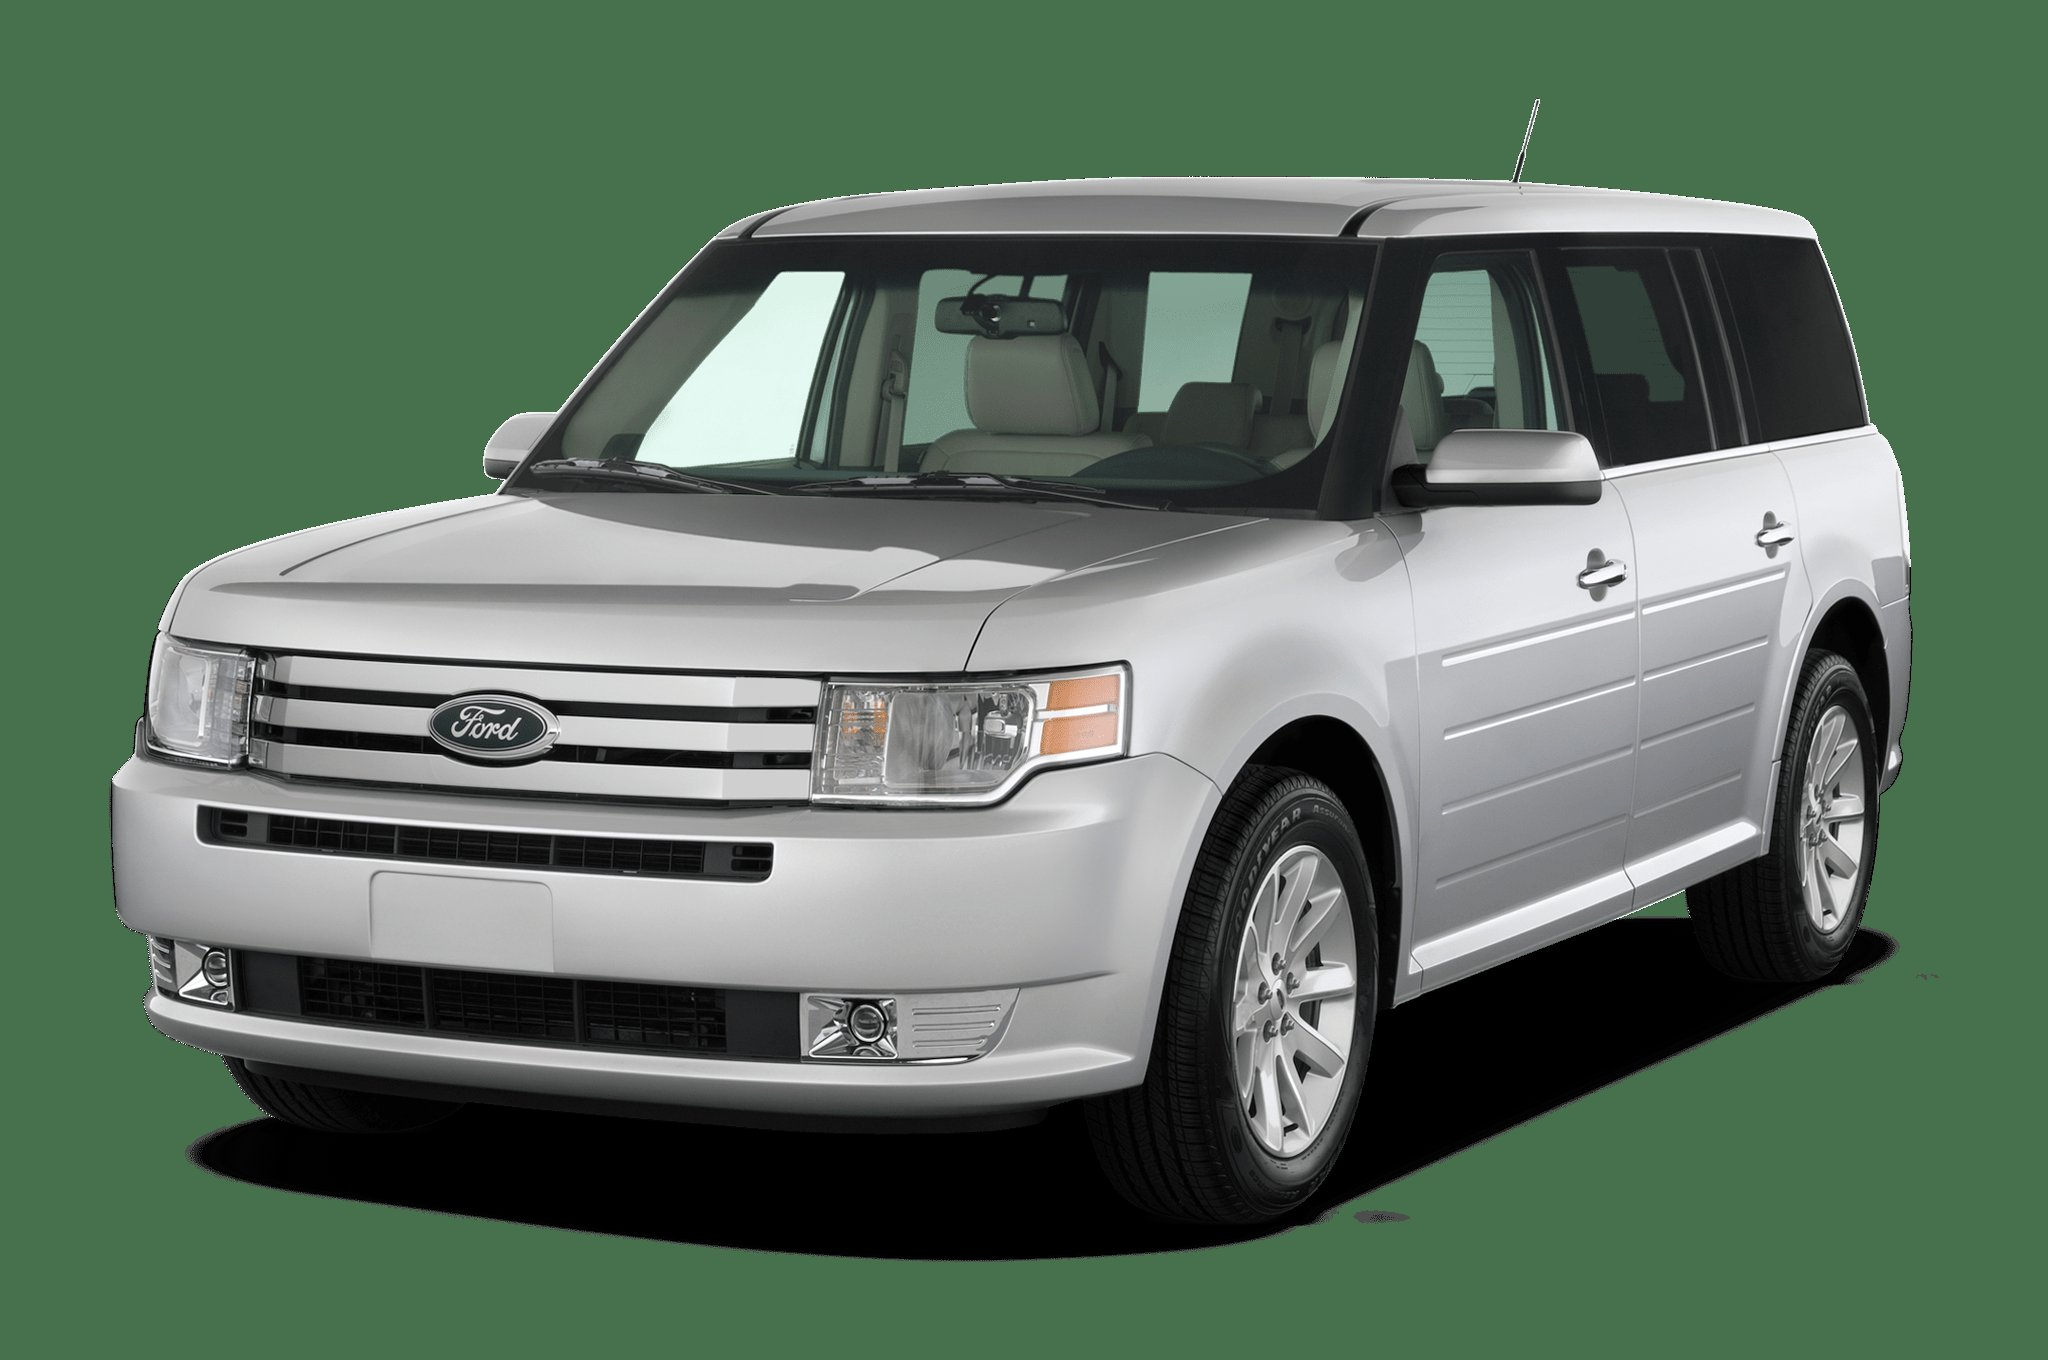 Latest 2010 Ford Flex Ecoboost Editors Notebook Review Free Download